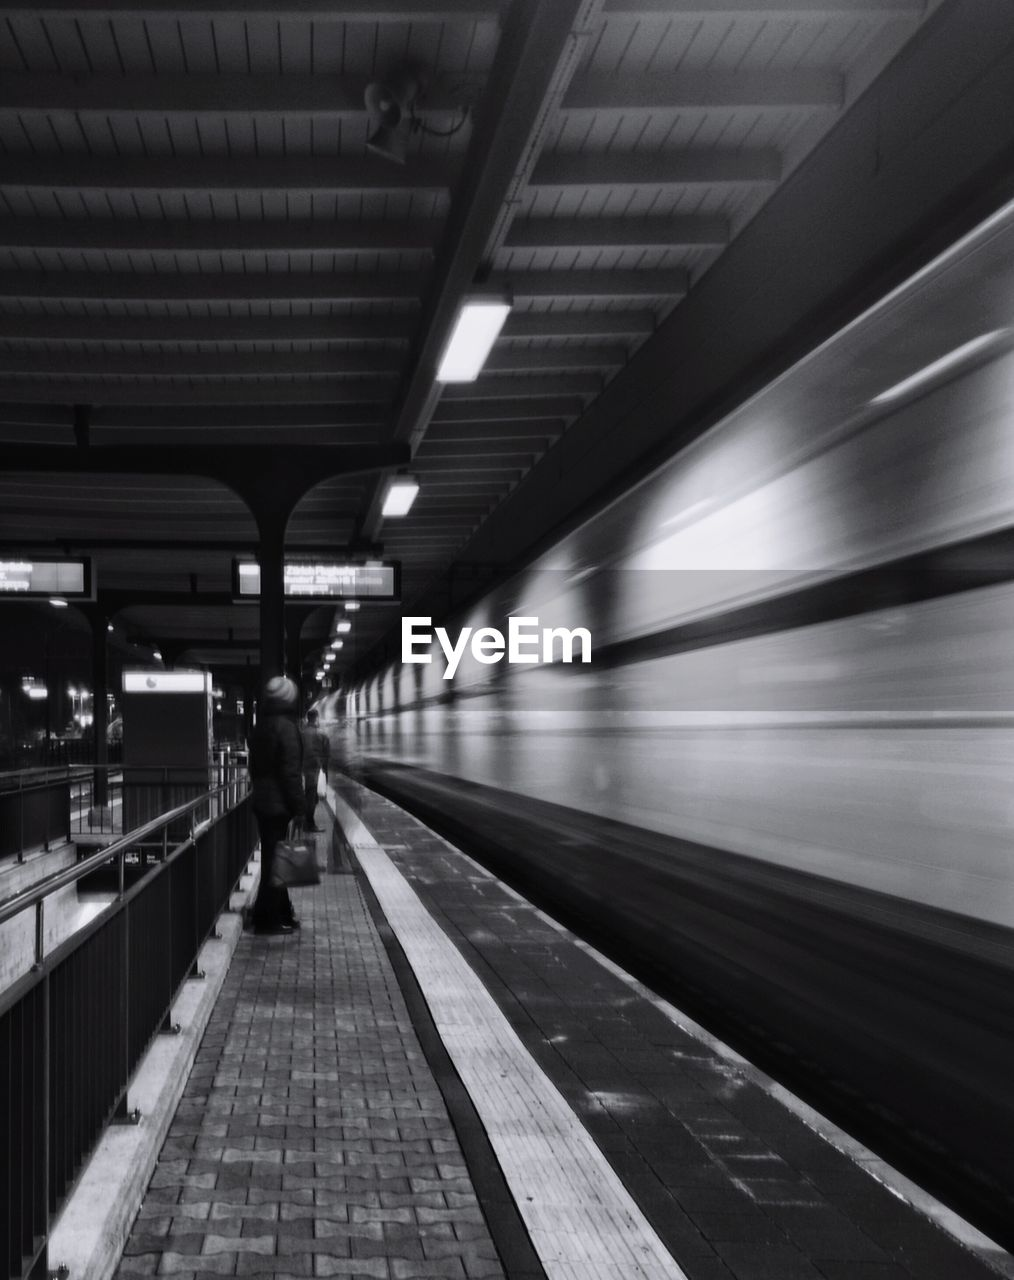 transportation, railroad station, railroad station platform, rail transportation, public transportation, illuminated, real people, indoors, full length, men, one person, travel, blurred motion, motion, mode of transport, women, the way forward, railroad track, lifestyles, standing, subway train, day, people